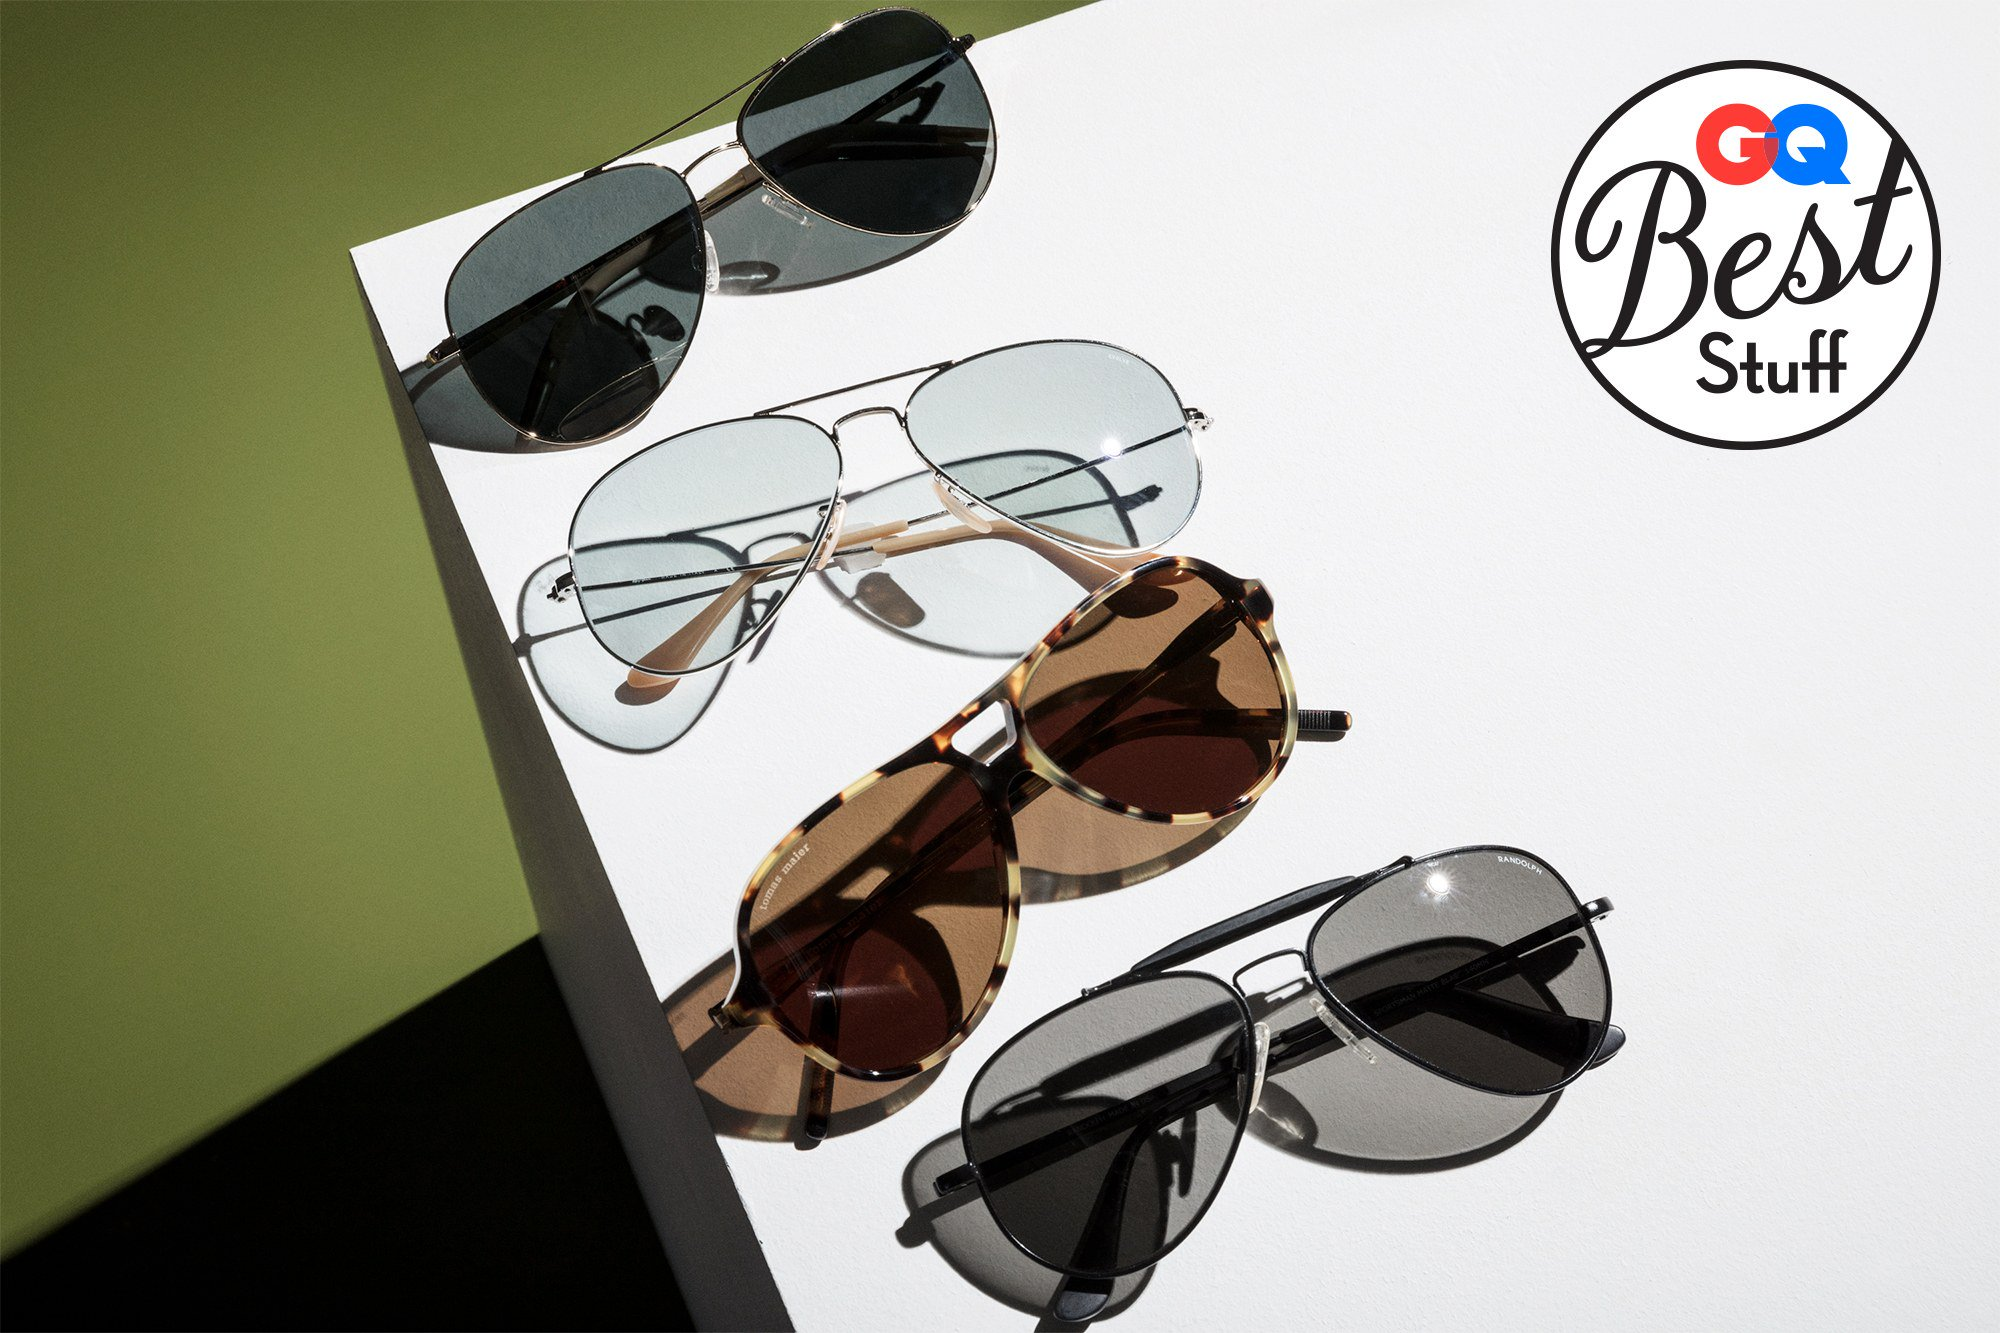 9 aviator sunglasses that look great on everyone (including you) https://t.co/9E8JYiNean #GQBestStuff https://t.co/evVFmPNl2m